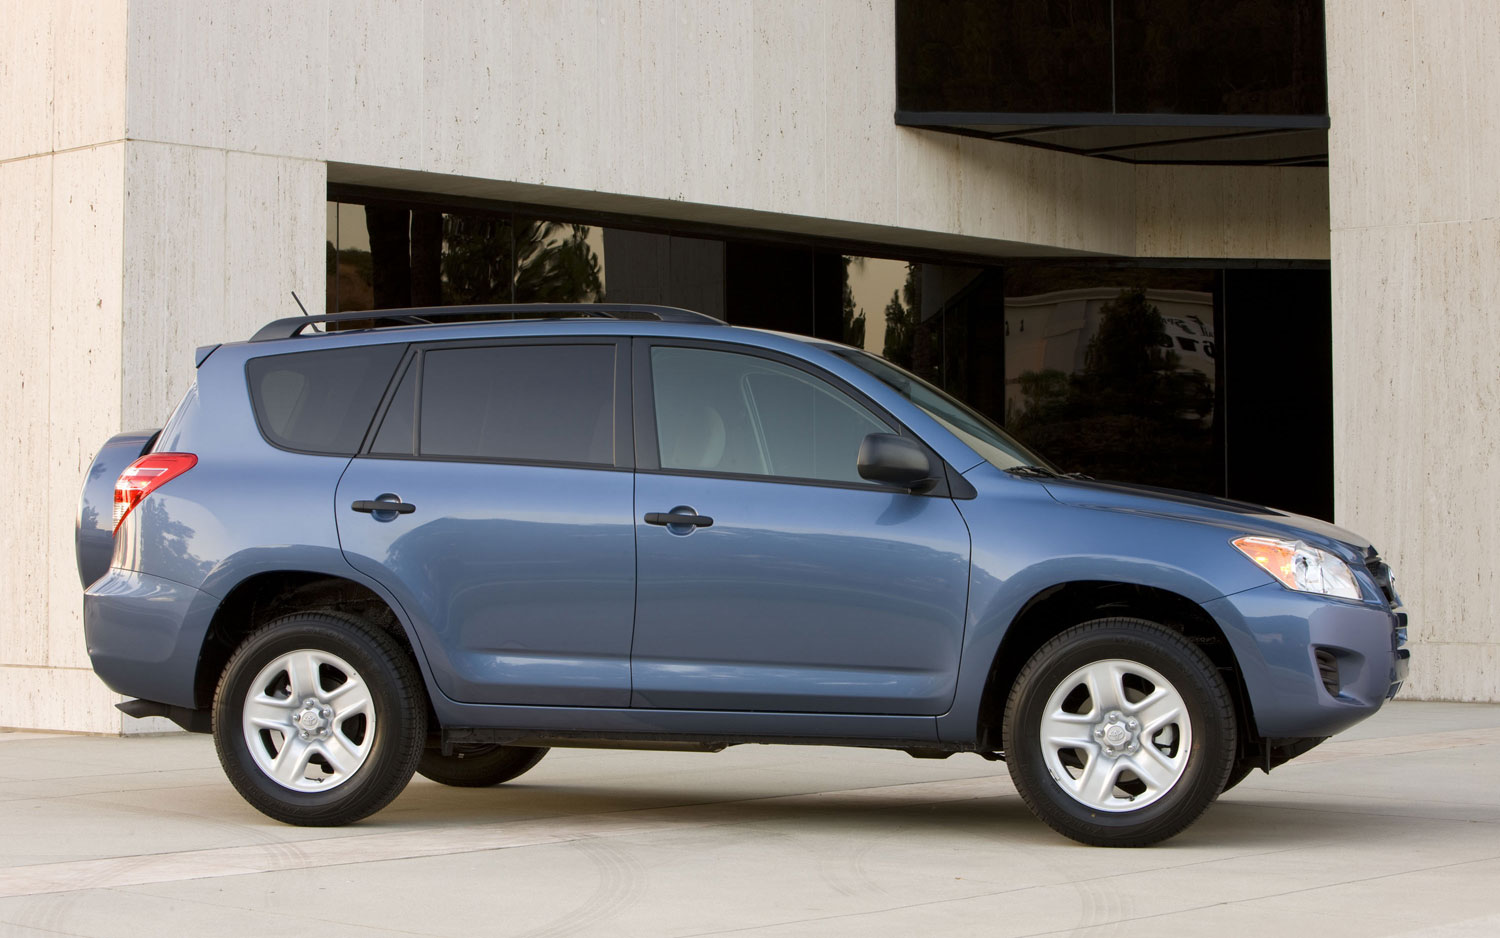 toyota prices 2012 rav4 at 23 460 2012 prius tops out at 30 565. Black Bedroom Furniture Sets. Home Design Ideas